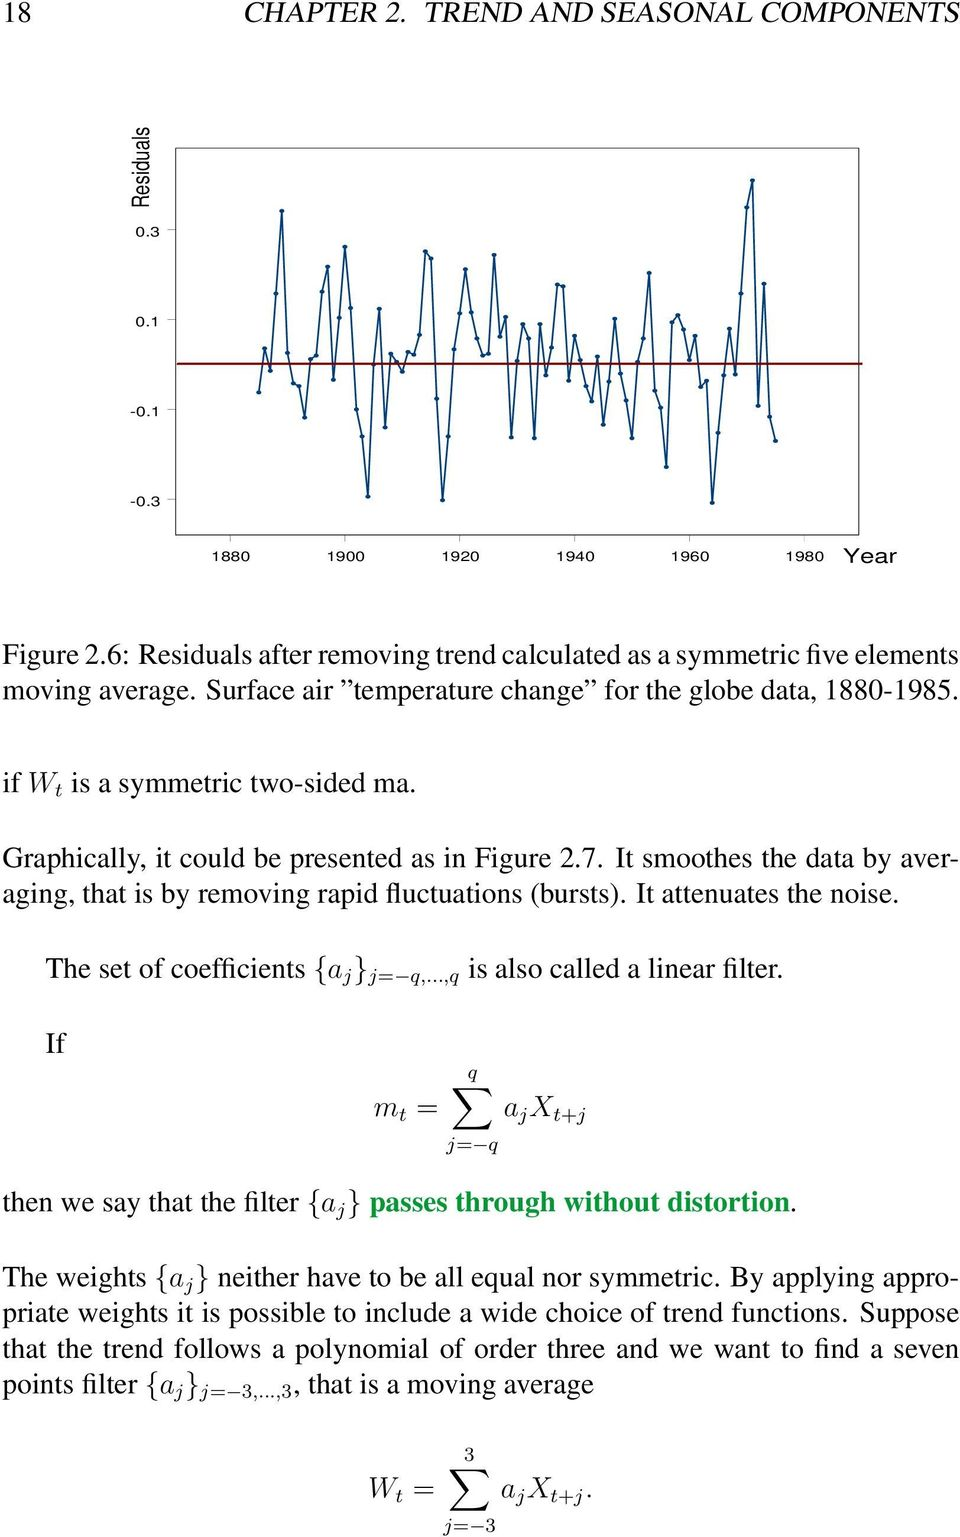 Graphically, it could be presented as in Figure 2.7. It smoothes the data by averaging, that is by removing rapid fluctuations (bursts). It attenuates the noise. The set of coefficients {a j },.